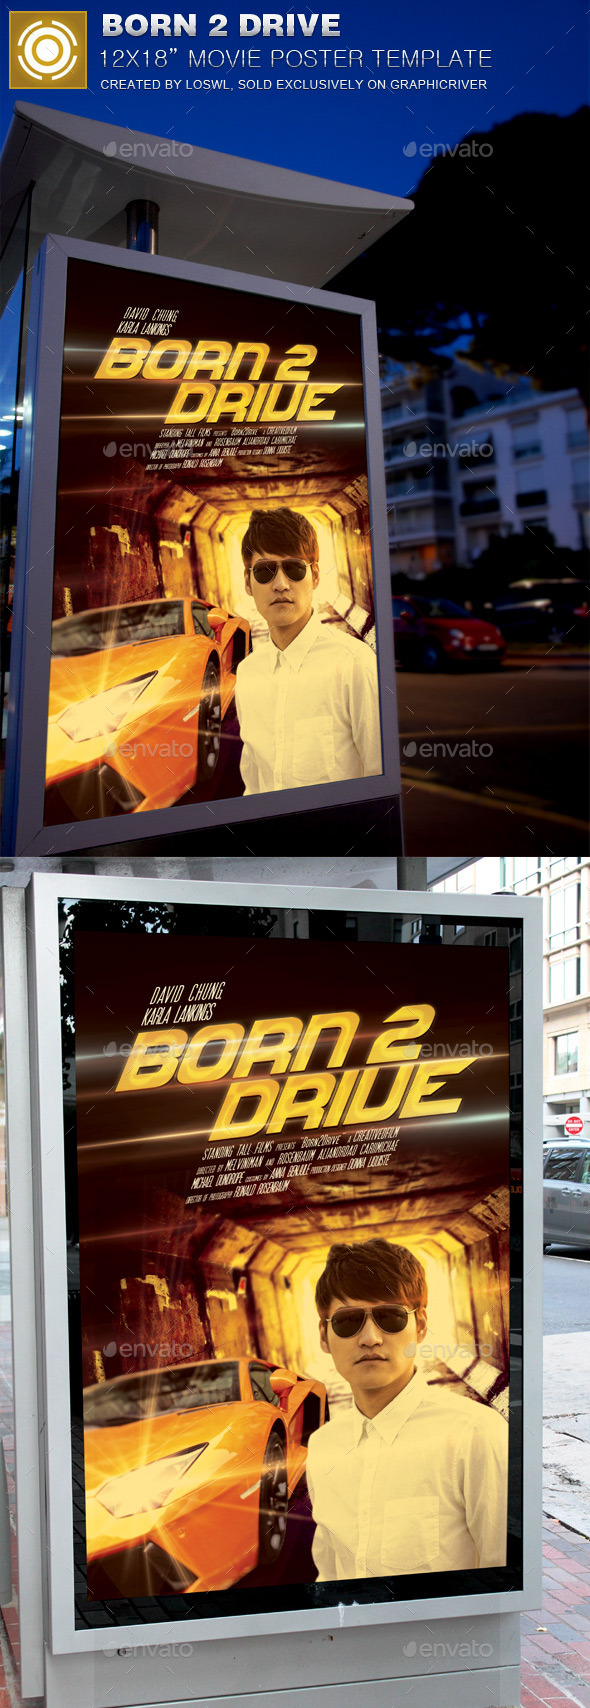 Born 2 Drive Movie Poster Template - Miscellaneous Events